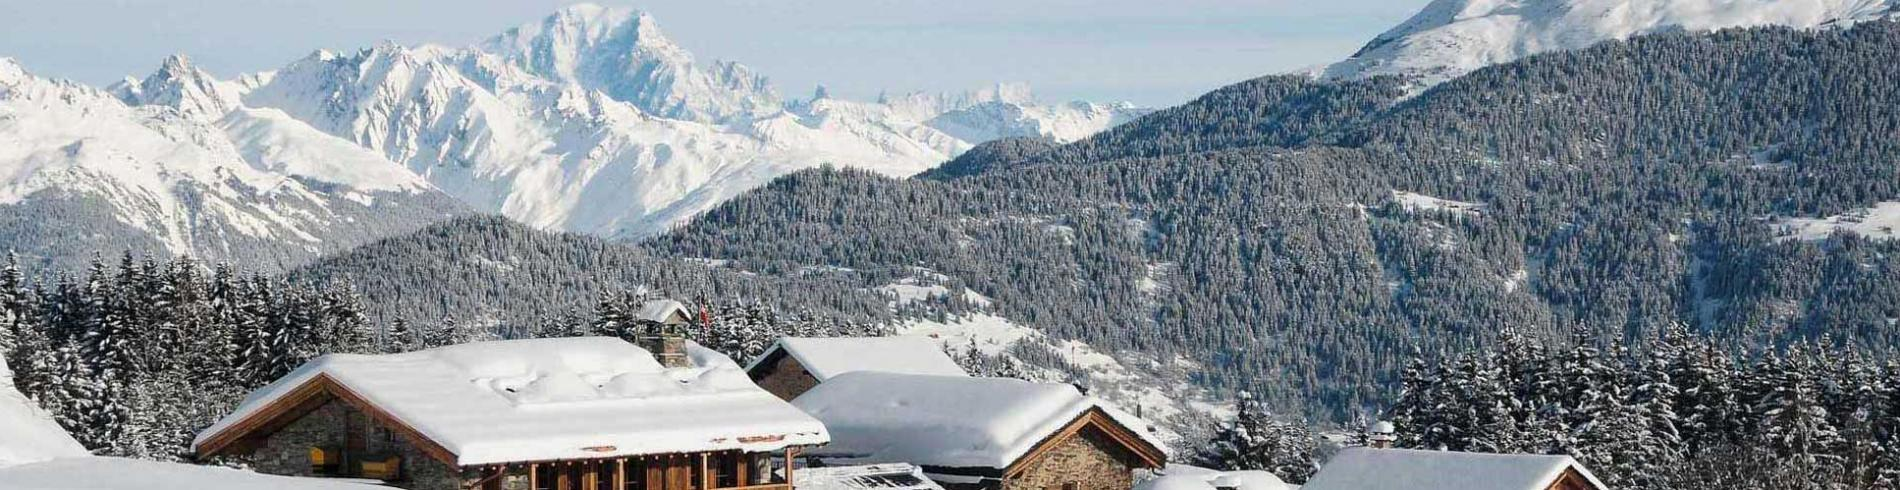 View over the village with snow topped chalets